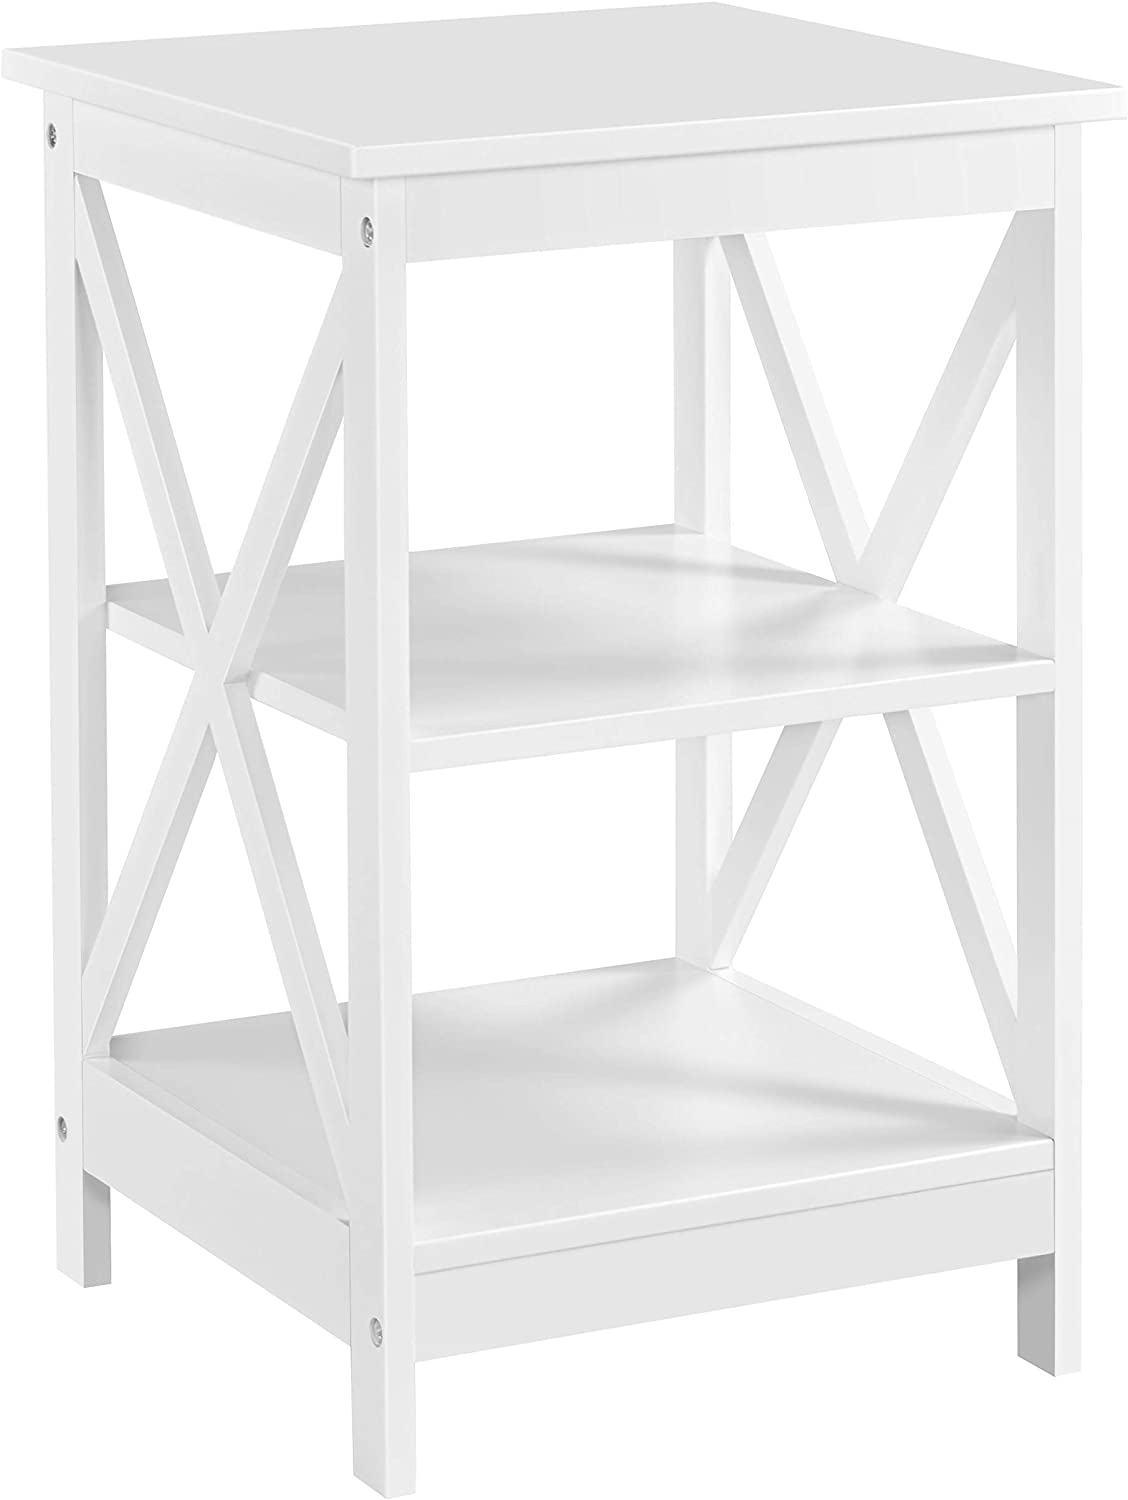 YAHEETECH 3 Tier Sofa Side End Table with Shelf, X Shape Chair Side Snack Table for Living Room, Bedside Table Night Stand Display Unit Organizer, White